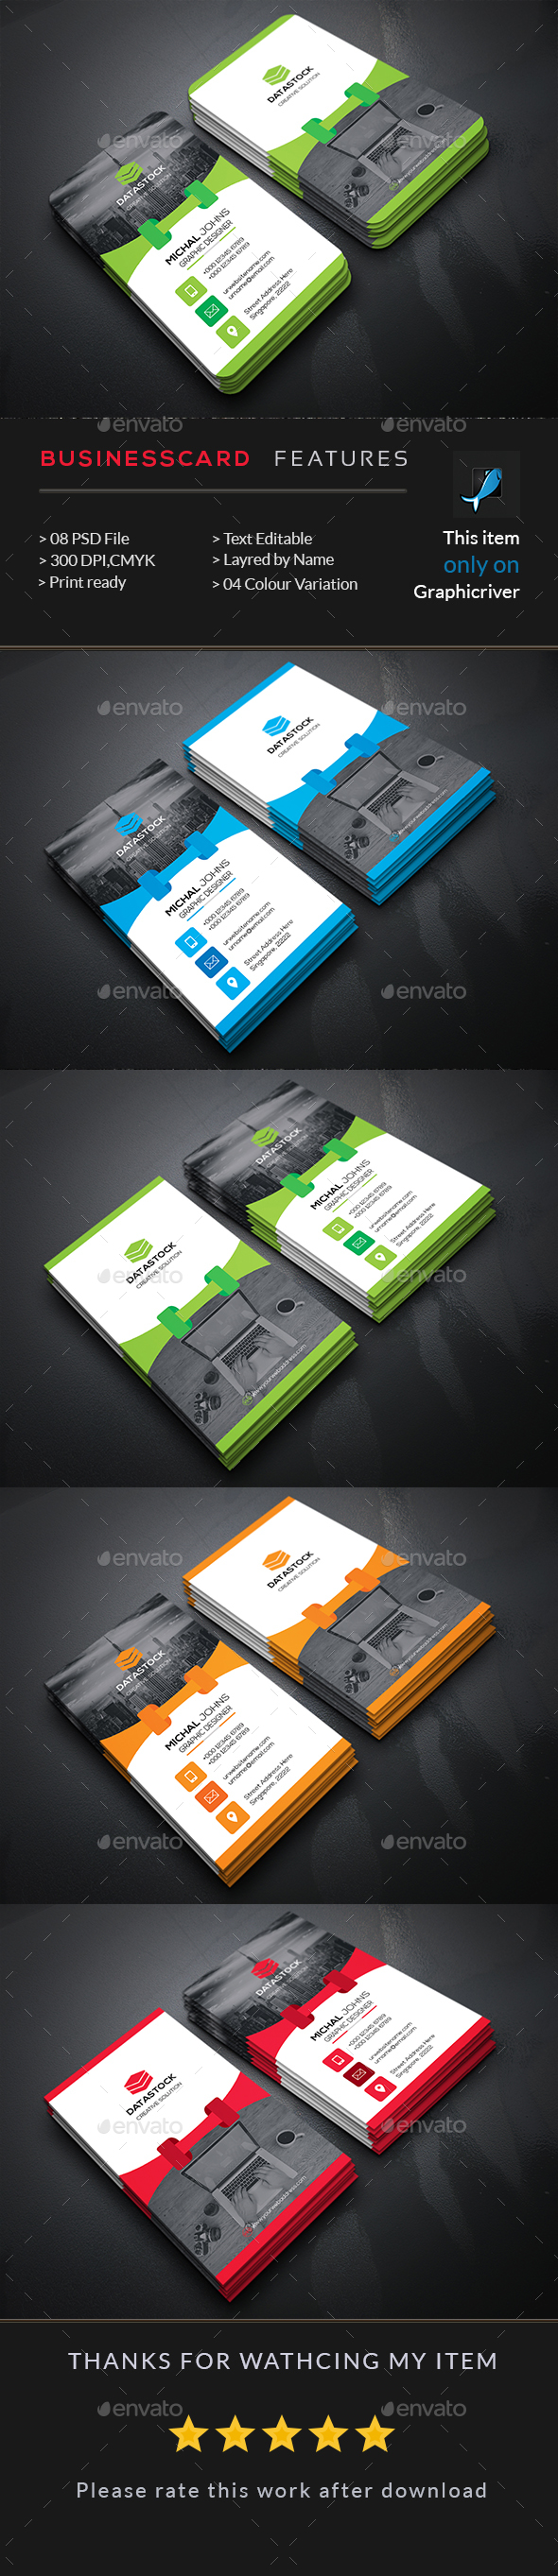 Corporate Vertical Business Card Template PSD | Business Card ...